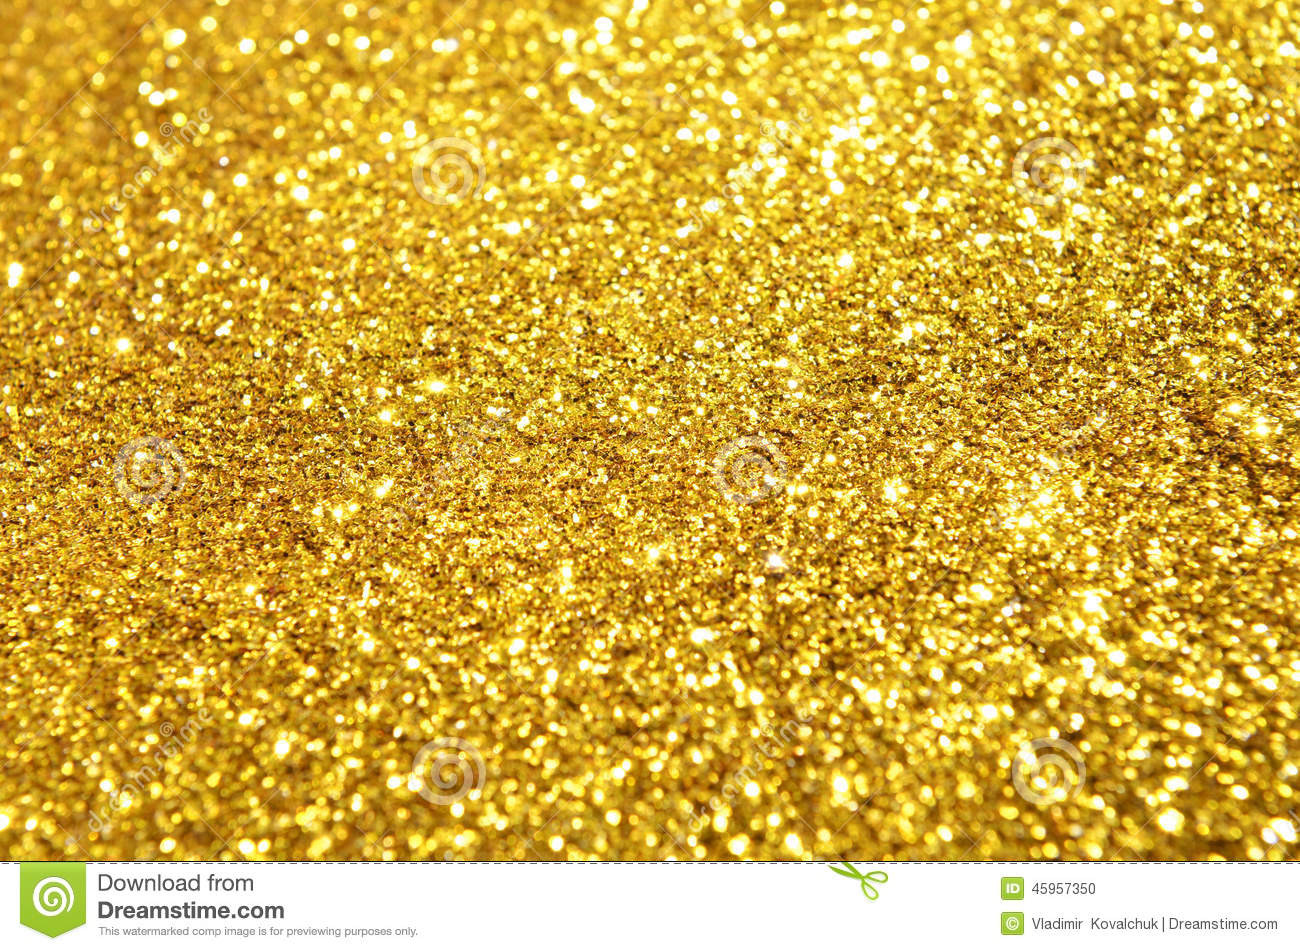 Fish 3d Wallpaper Download Festive Gold Glitter Background Stock Photo Image Of